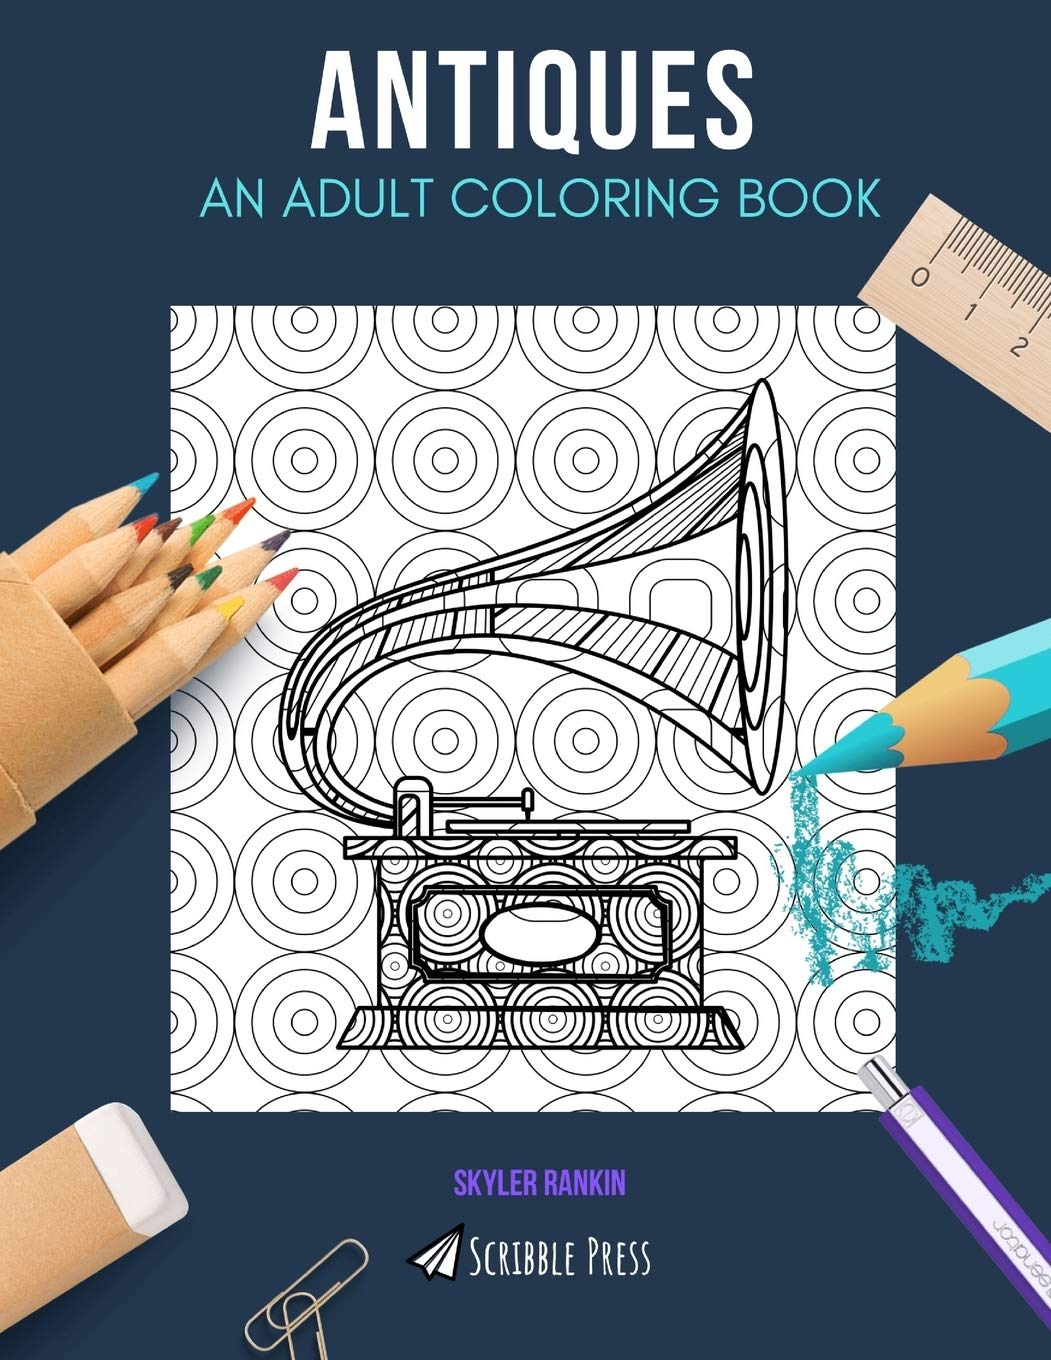 ANTIQUES: AN ADULT COLORING BOOK: An Antiques Coloring Book For Adults